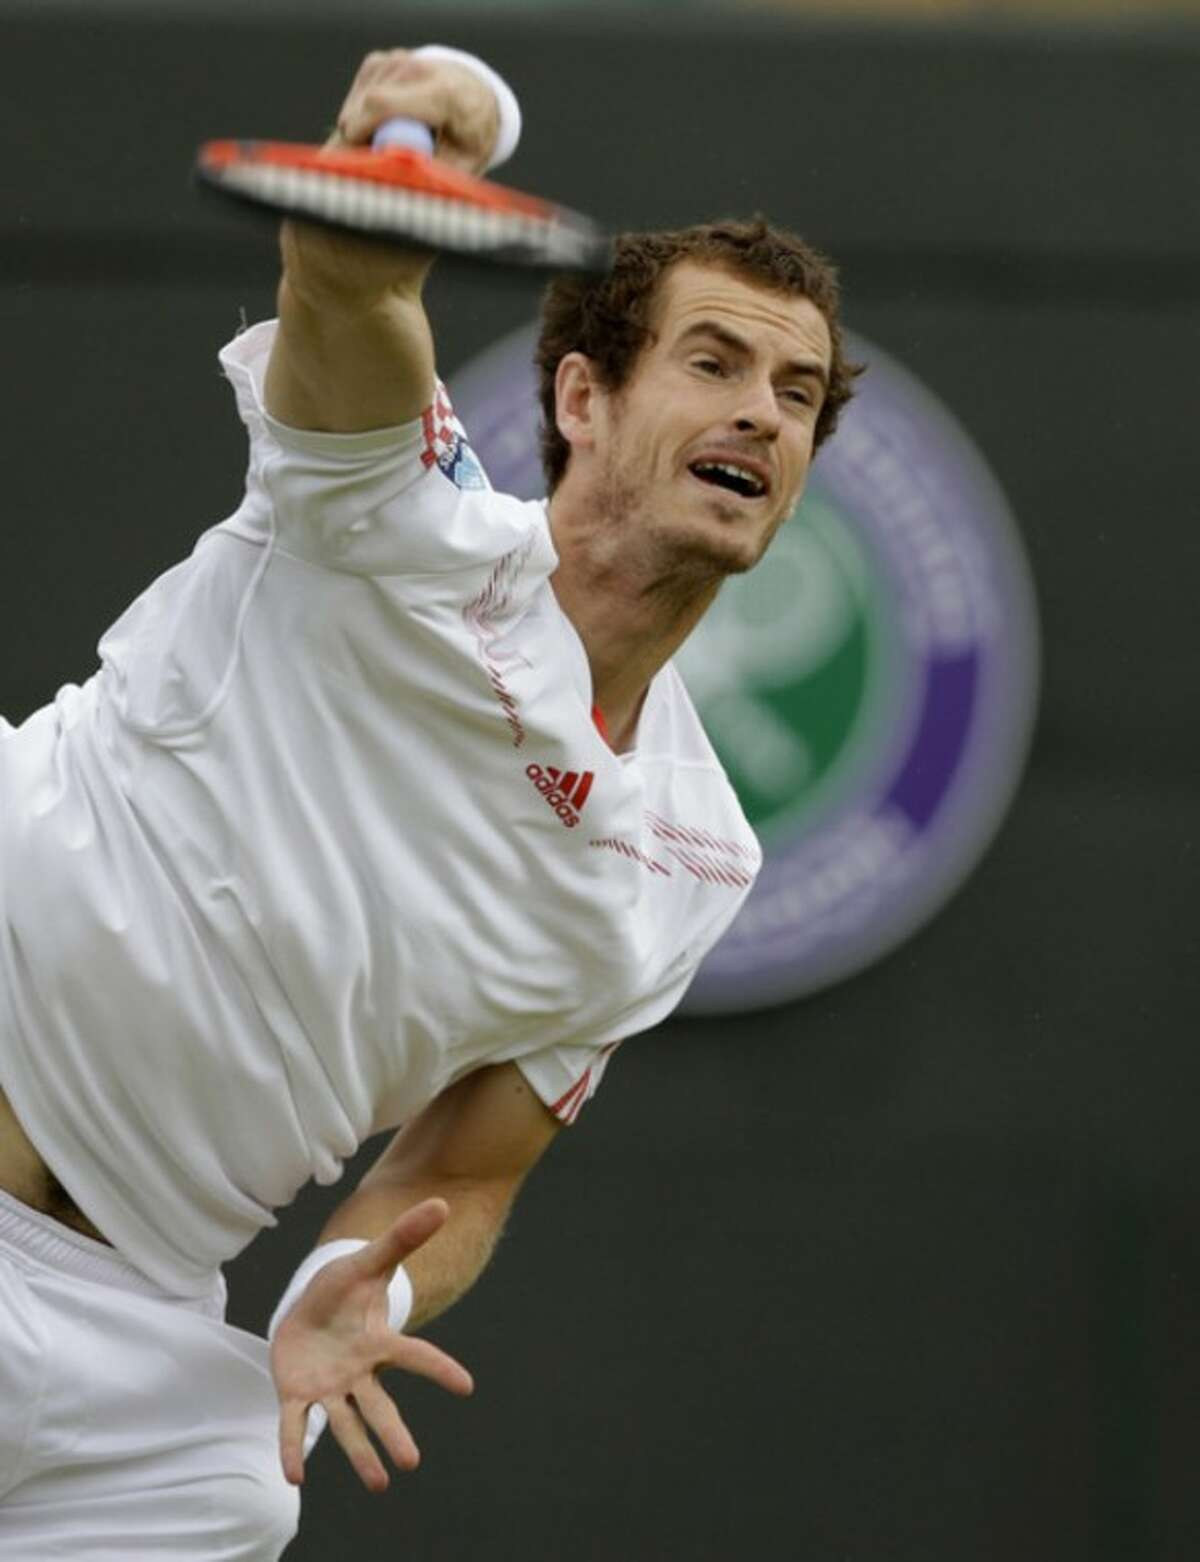 Andy Murray of Britain serves to Marin Cilic of Croatia during a fourth round singles match at the All England Lawn Tennis Championships at Wimbledon, England, Tuesday, July 3, 2012. (AP Photo/Kirsty Wigglesworth)